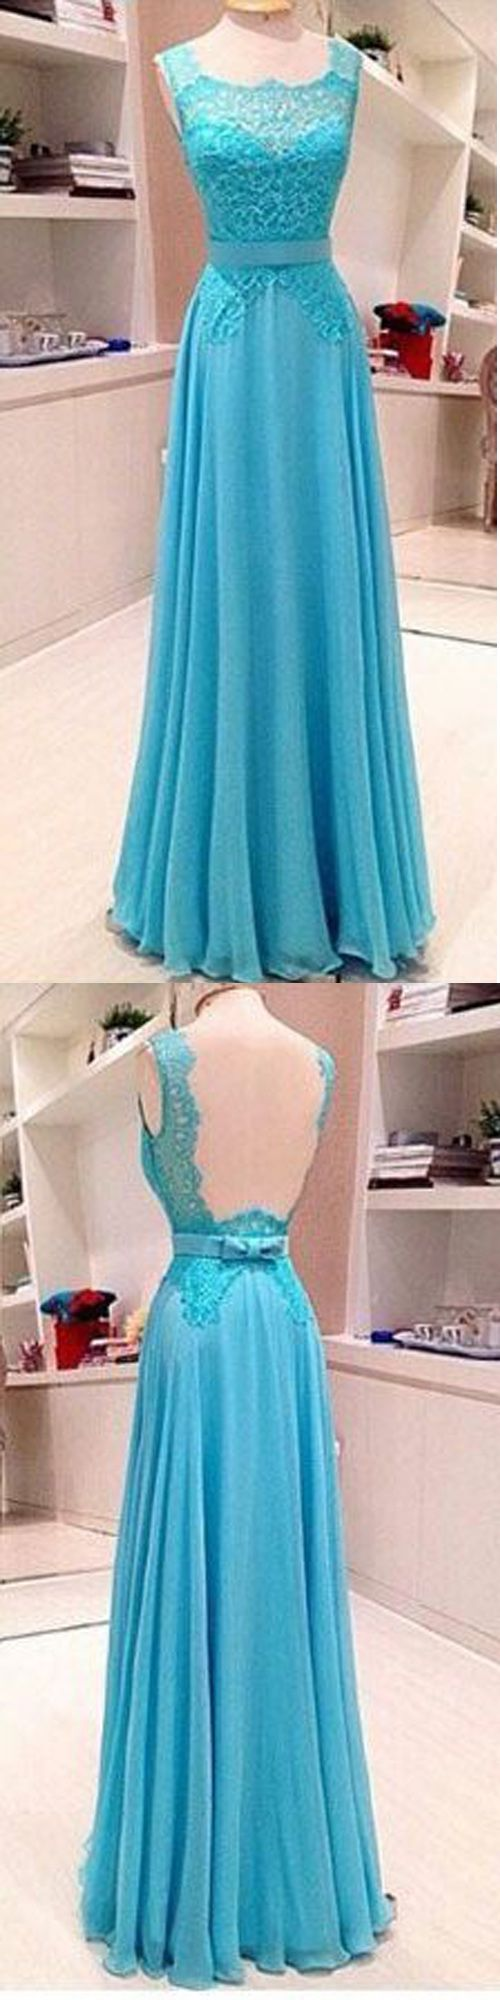 Charming Prom Dress,Chiffon Prom Dress,Lace Prom Dress,A-Line Evening Dress